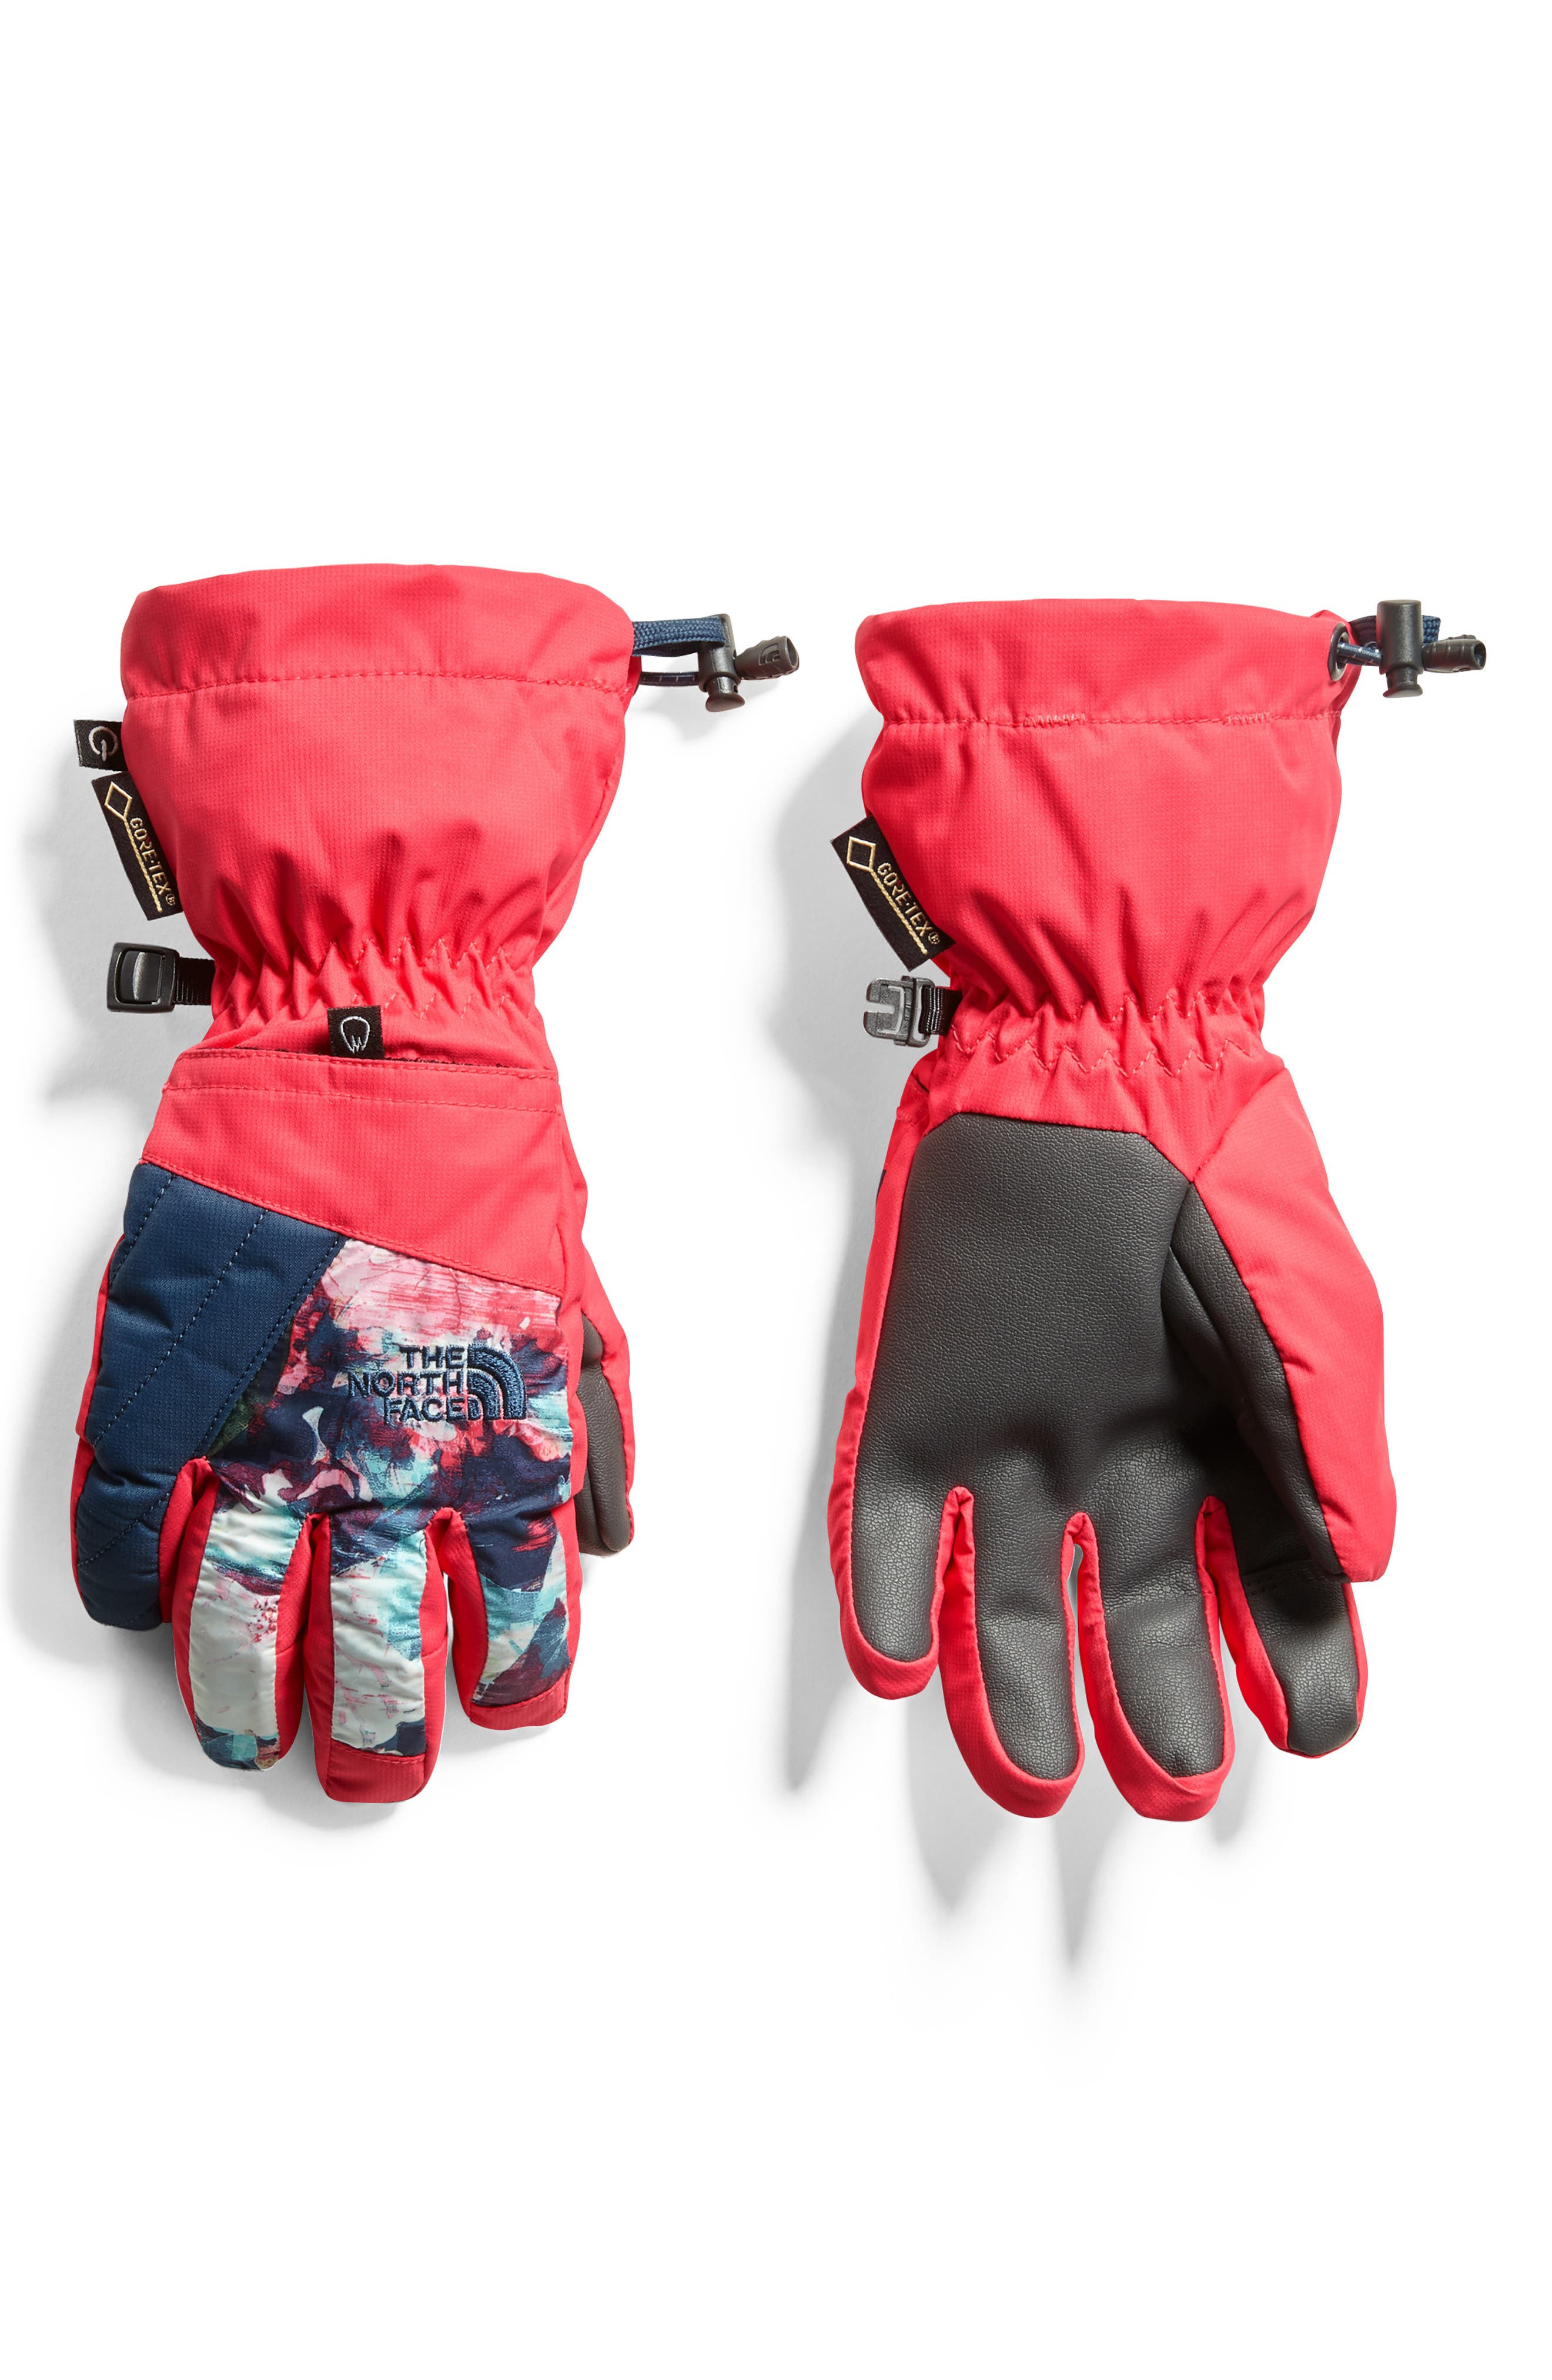 Montana Gore-Tex<sup>®</sup> Waterproof Gloves,                         Main,                         color, PINK FLORAL PRINT/ BLUE TEAL